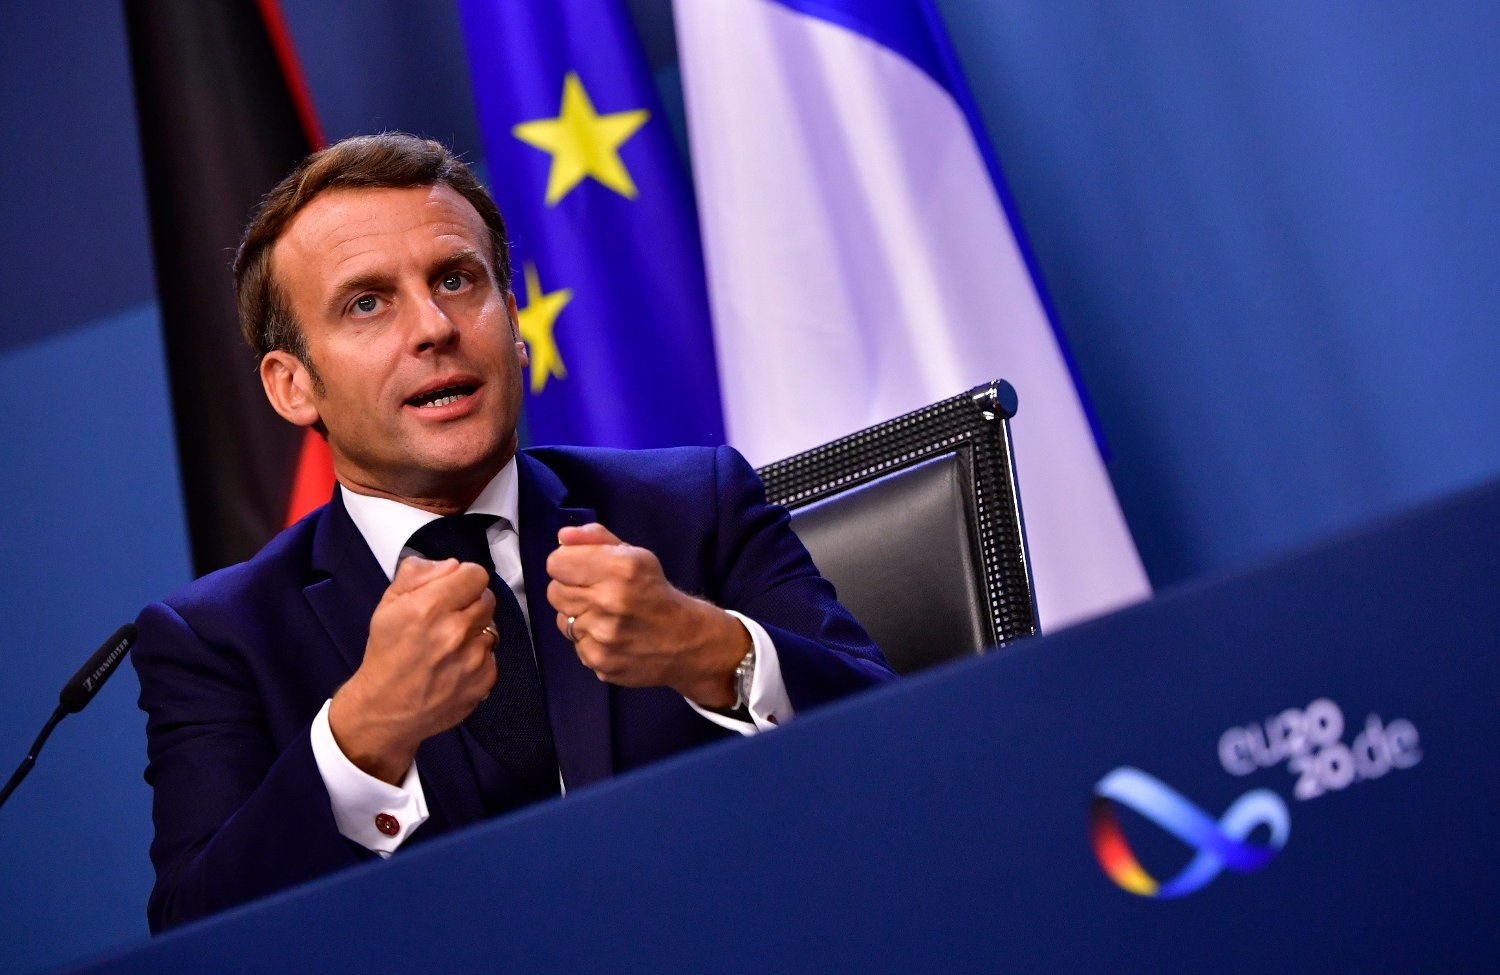 French President Emmanuel Macron speaks during a media conference at the end of an EU summit in Brussels, Tuesday, July 21, 2020. Weary European Union leaders finally clinched an unprecedented budget and coronavirus recovery fund early Tuesday, finding unity after four days and as many nights of fighting and wrangling over money and power in one of their longest summits ever.